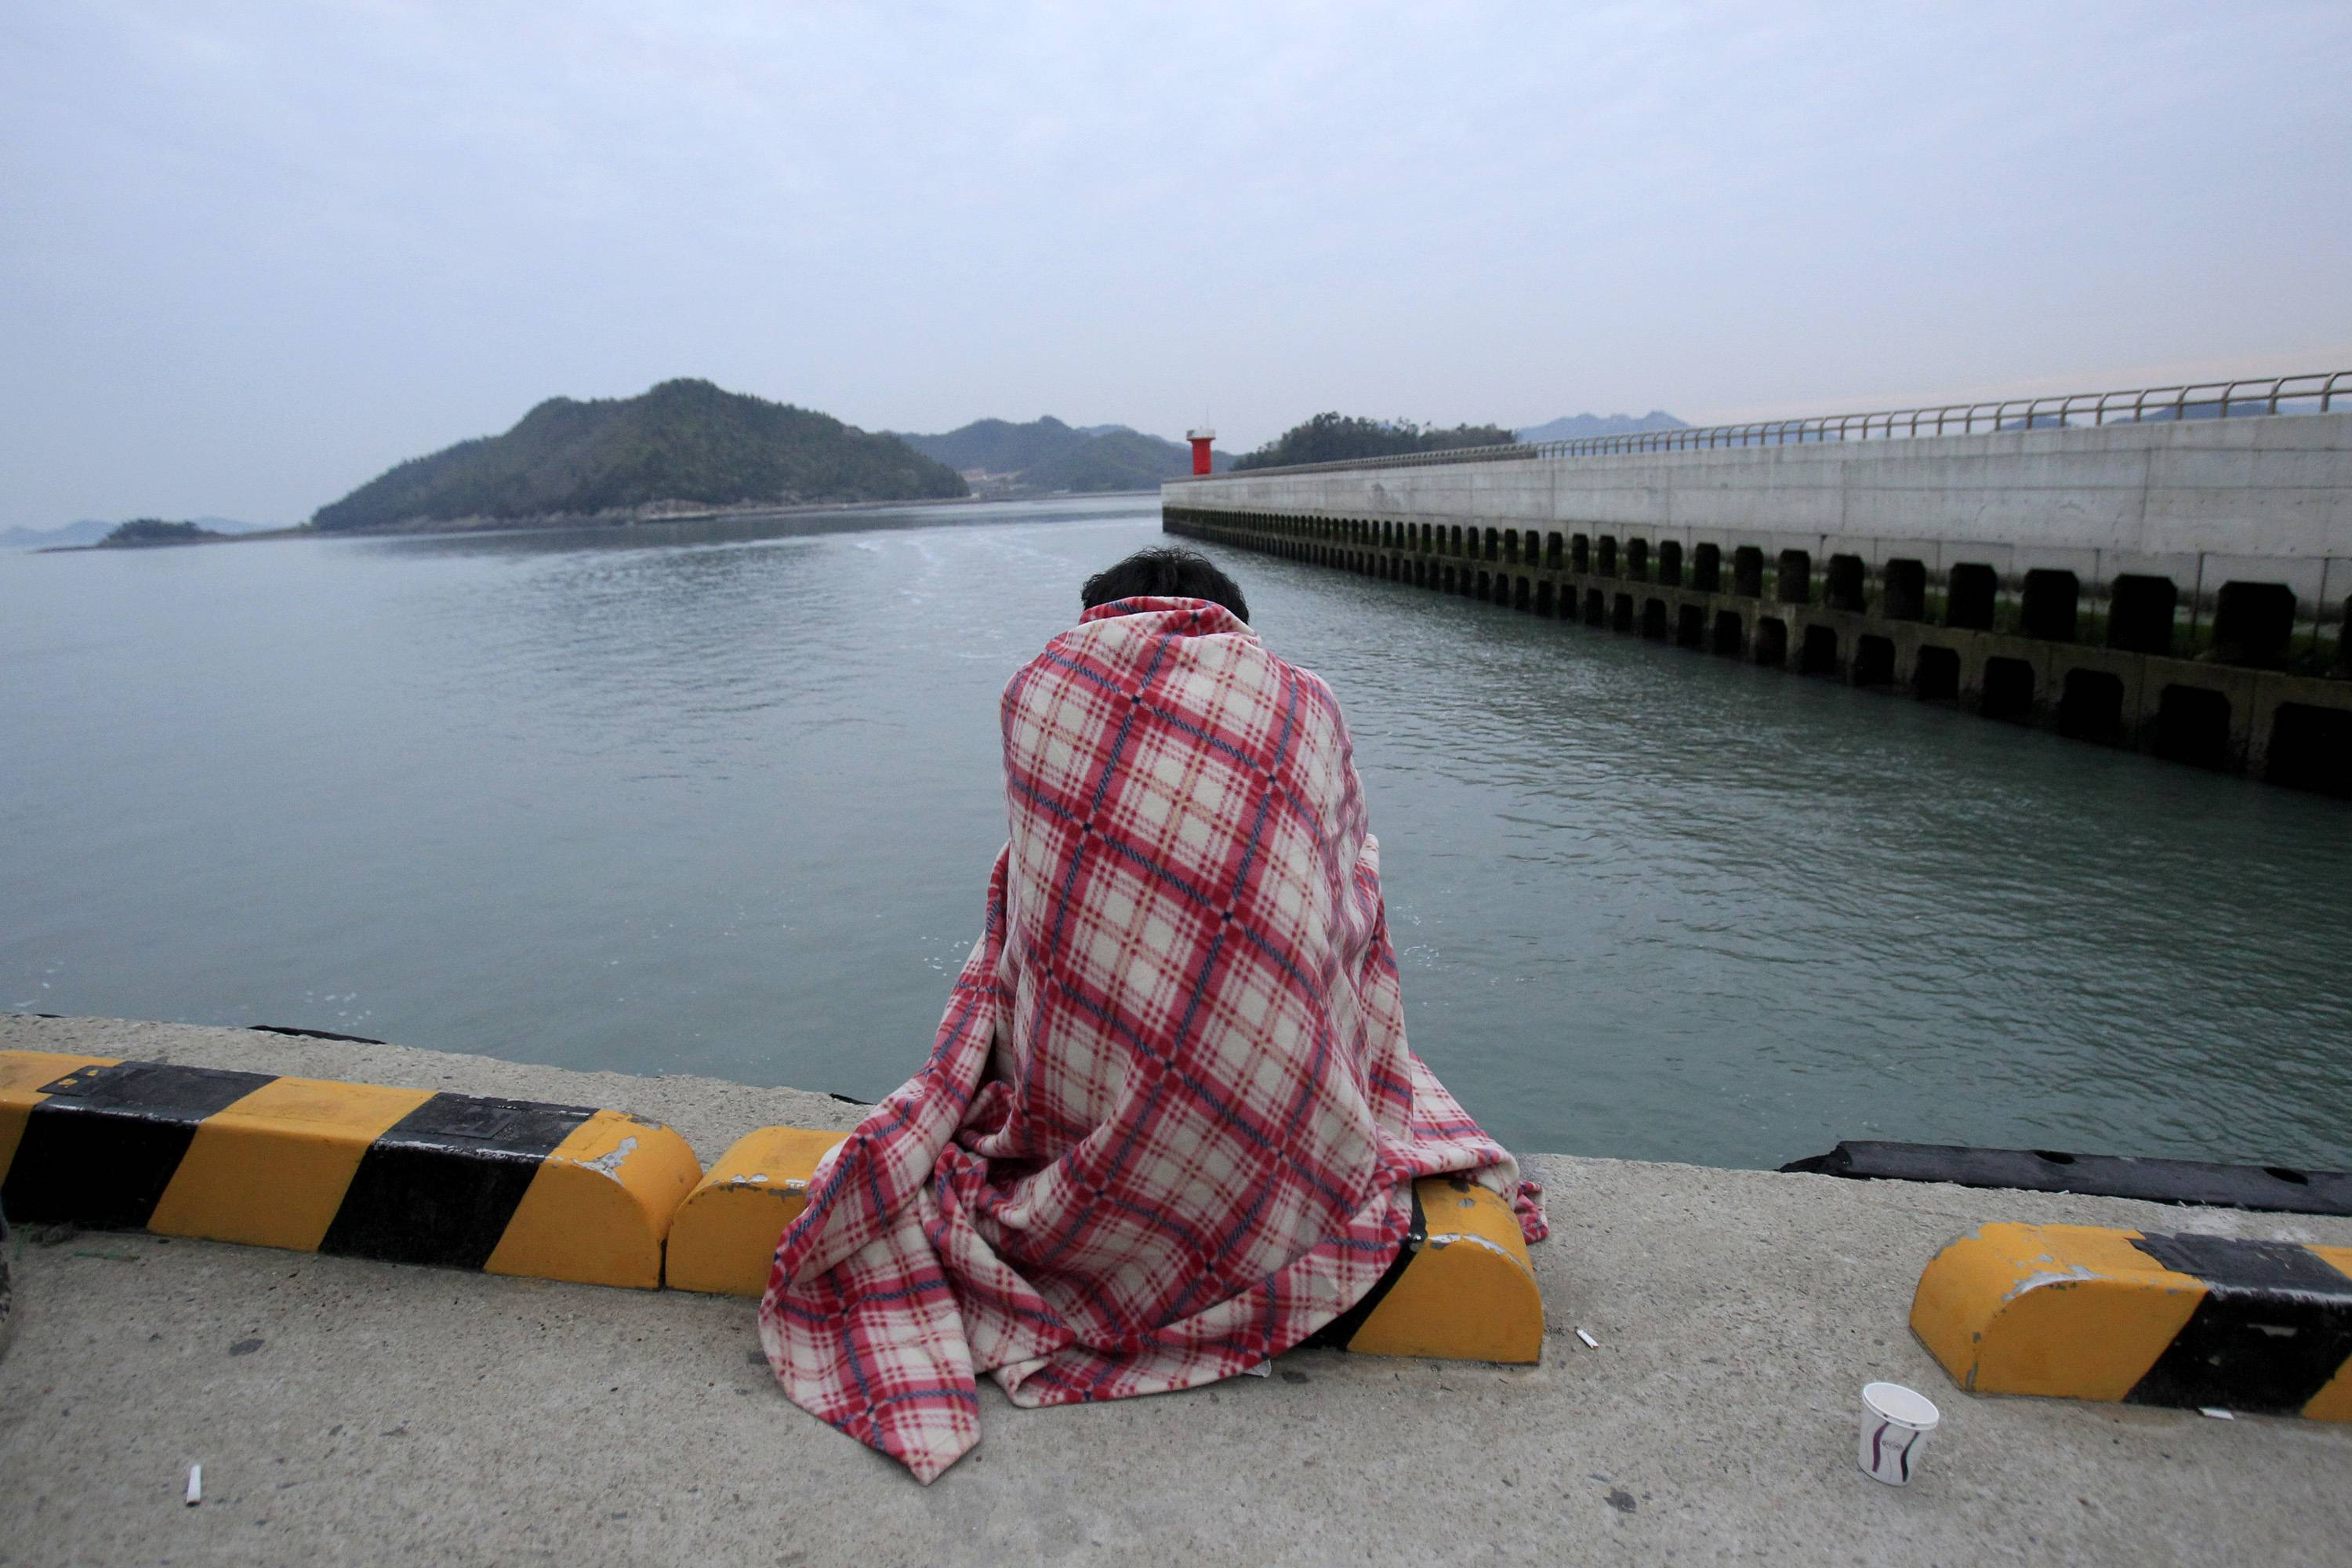 A relative waits for their missing loved one at a port in Jindo, South Korea, Wednesday, April 16, 2014. A ferry carrying 459 people, mostly high school students on an overnight trip to a tourist island, sank off South Korea's southern coast on Wednesday, leaving nearly 300 people missing despite a frantic, hourslong rescue by dozens of ships and helicopters.